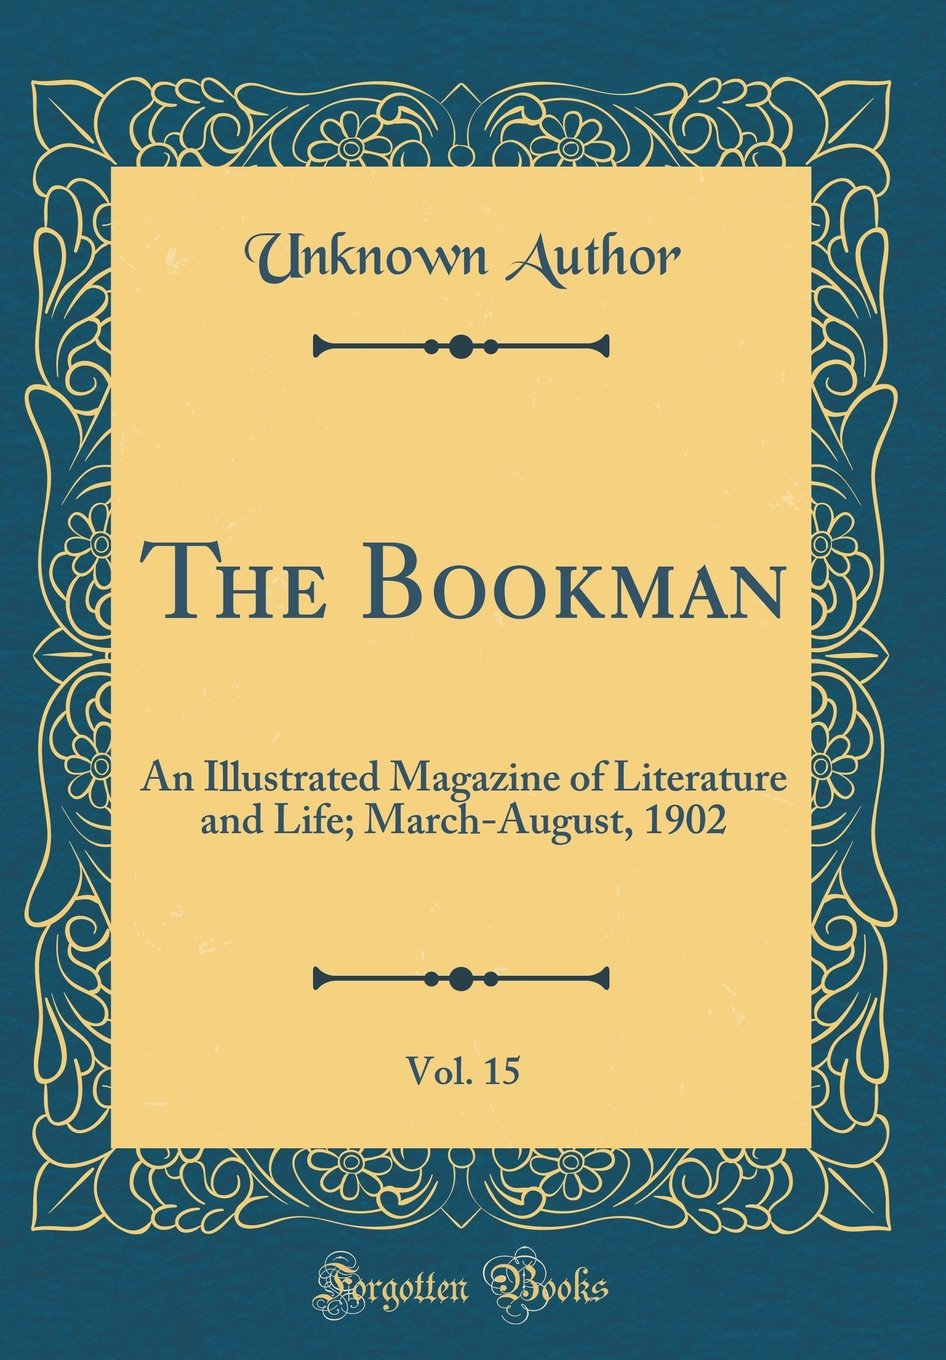 The Bookman, Vol. 15: An Illustrated Magazine of Literature and Life; March-August, 1902 (Classic Reprint) pdf